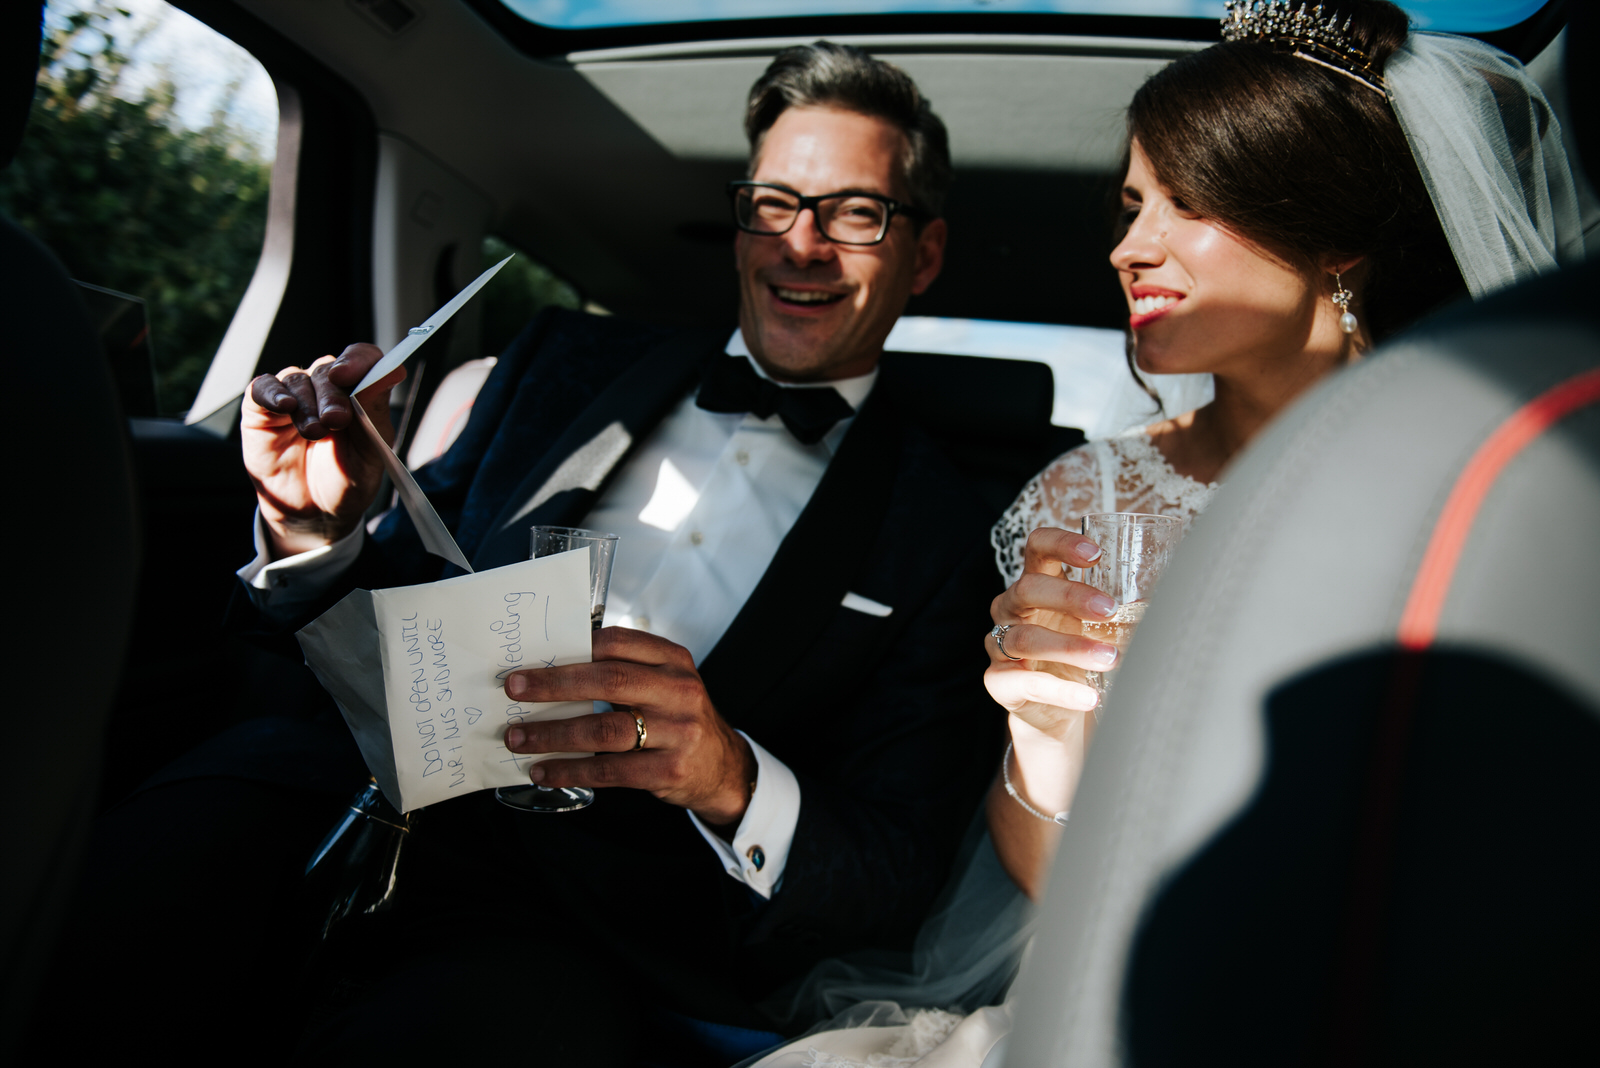 Groom opens letter that Bride wrote to him